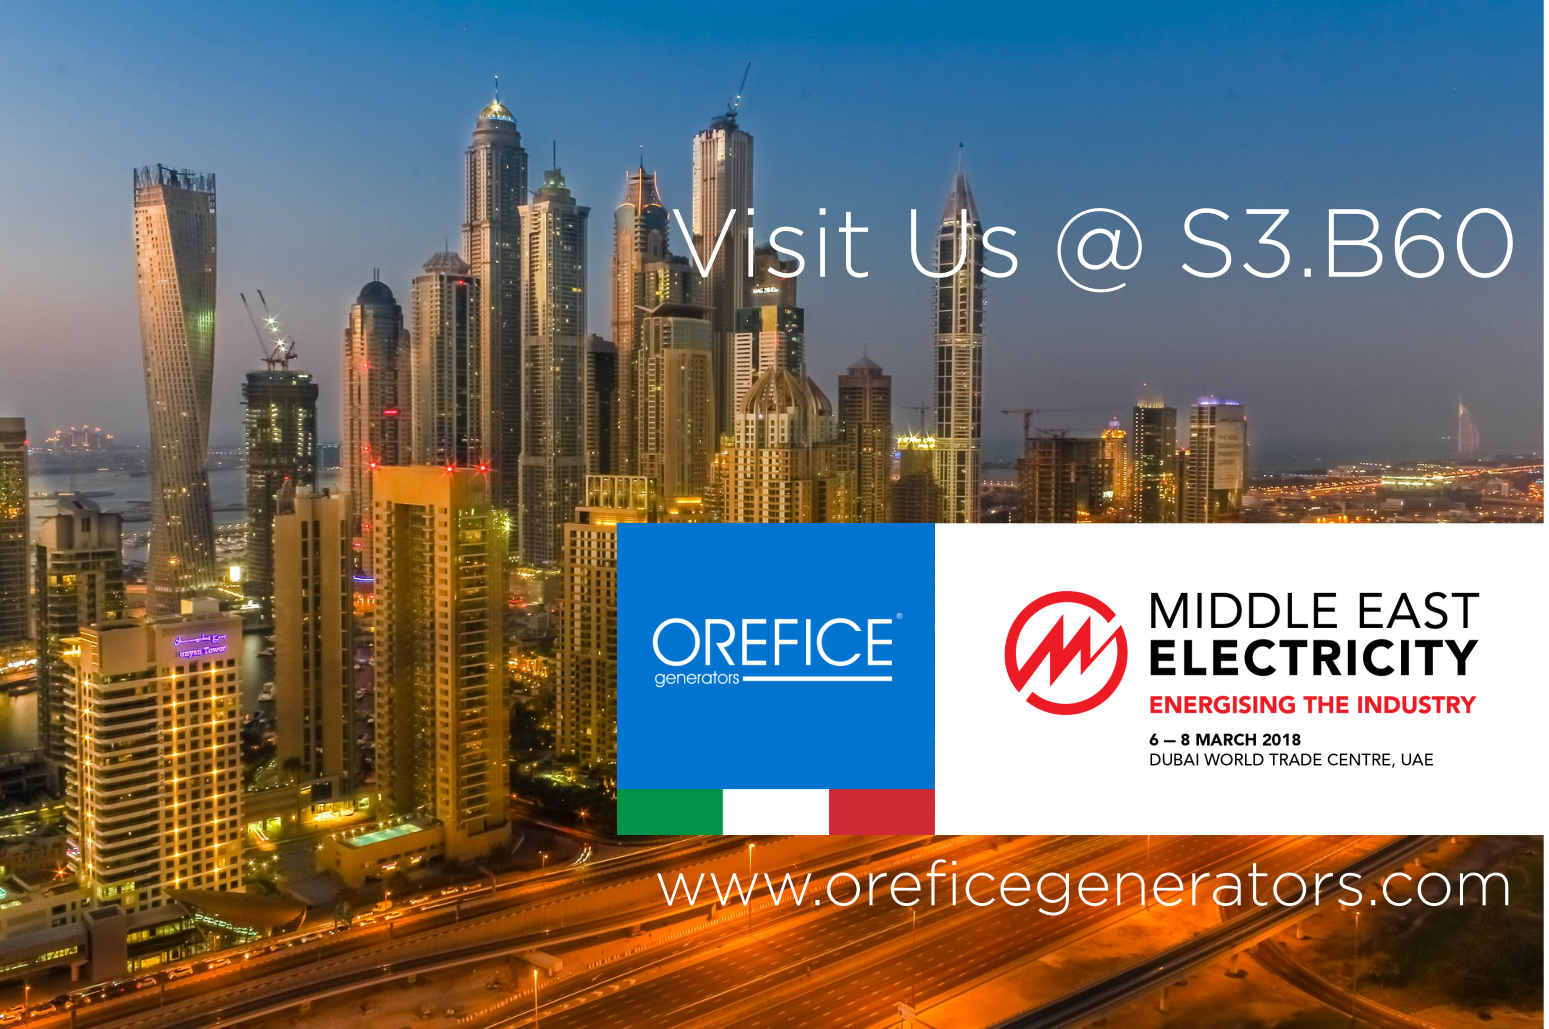 Middle East Electricity 2018 - World Trade Center DUBAI - UAE6th to 8th March 2018STAND S3.B60